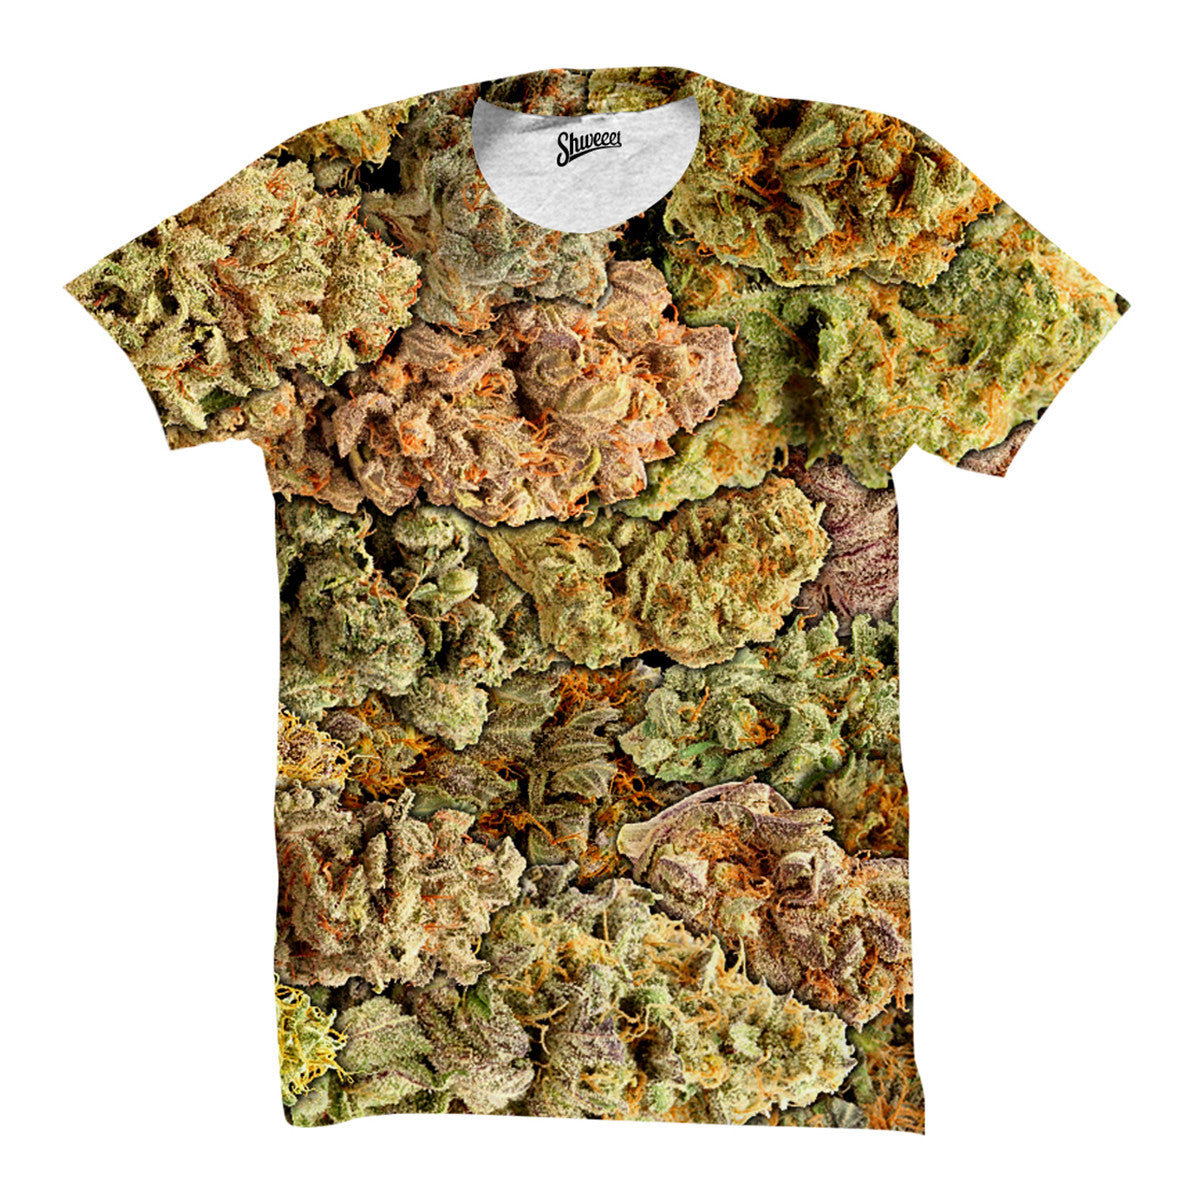 All Buds Shirt